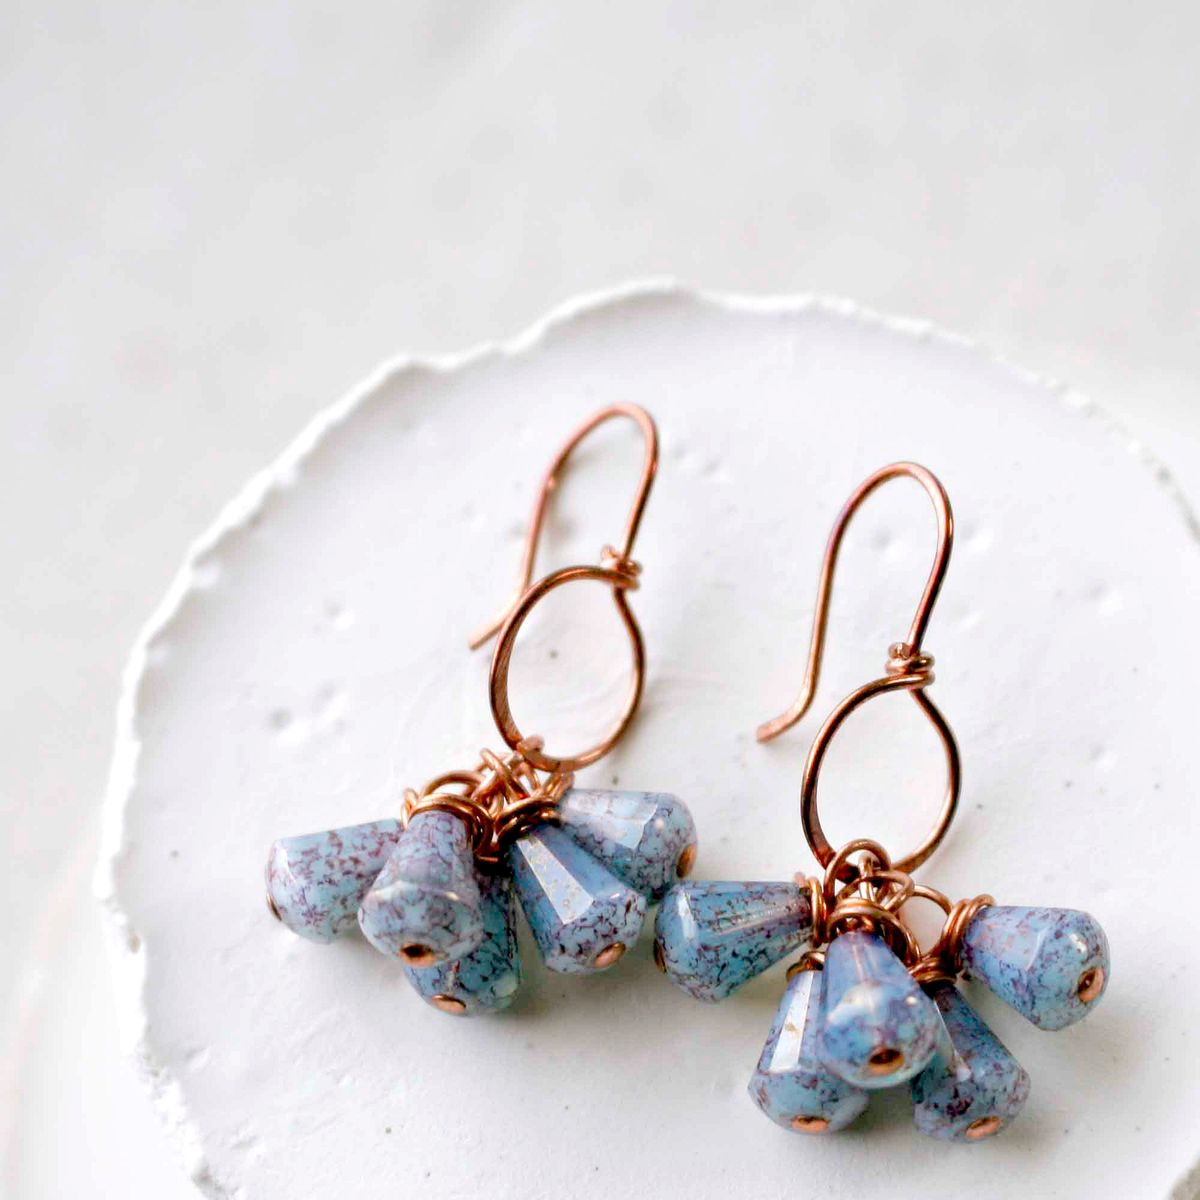 Copper Open Circle Hoop Earrings with Blue Purple Mottled Czech Glass Bead Dangles  - product images  of